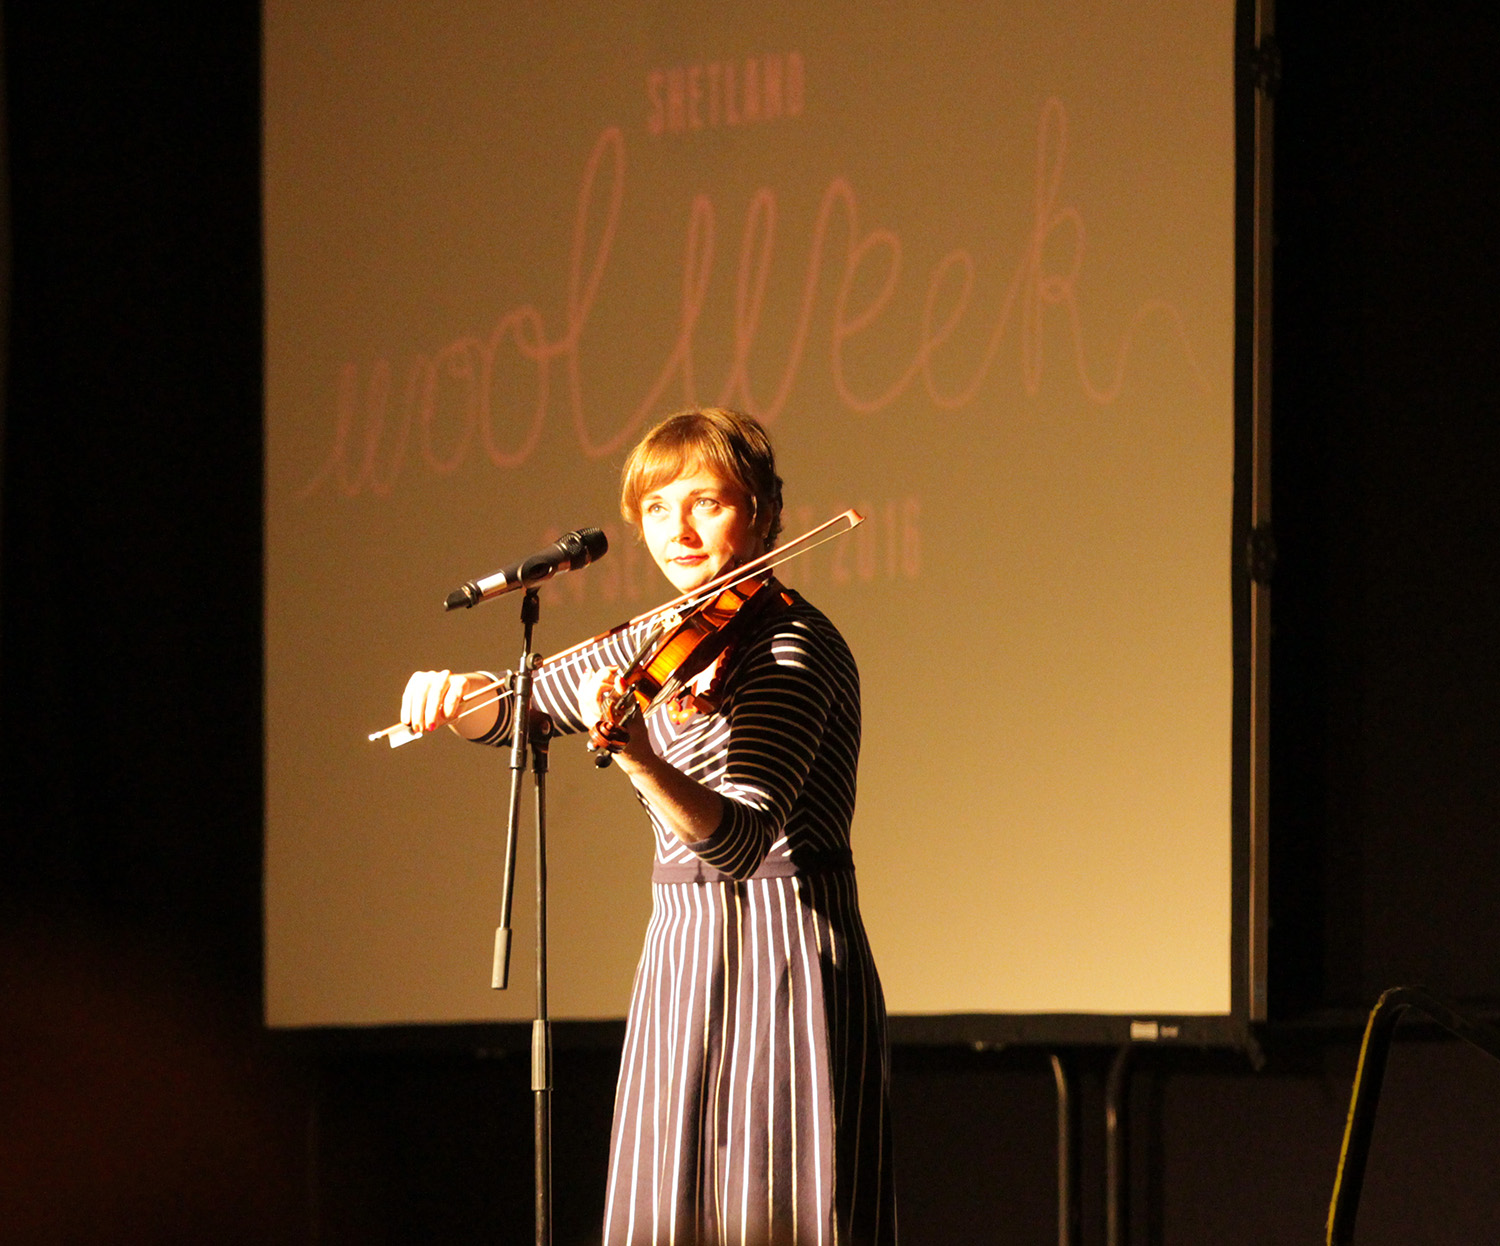 I got to try out a super-fancy zoomy lens (thanks to proper photographer  Scott Goudie !) to get this shot of Claire White who was compere for the evening.